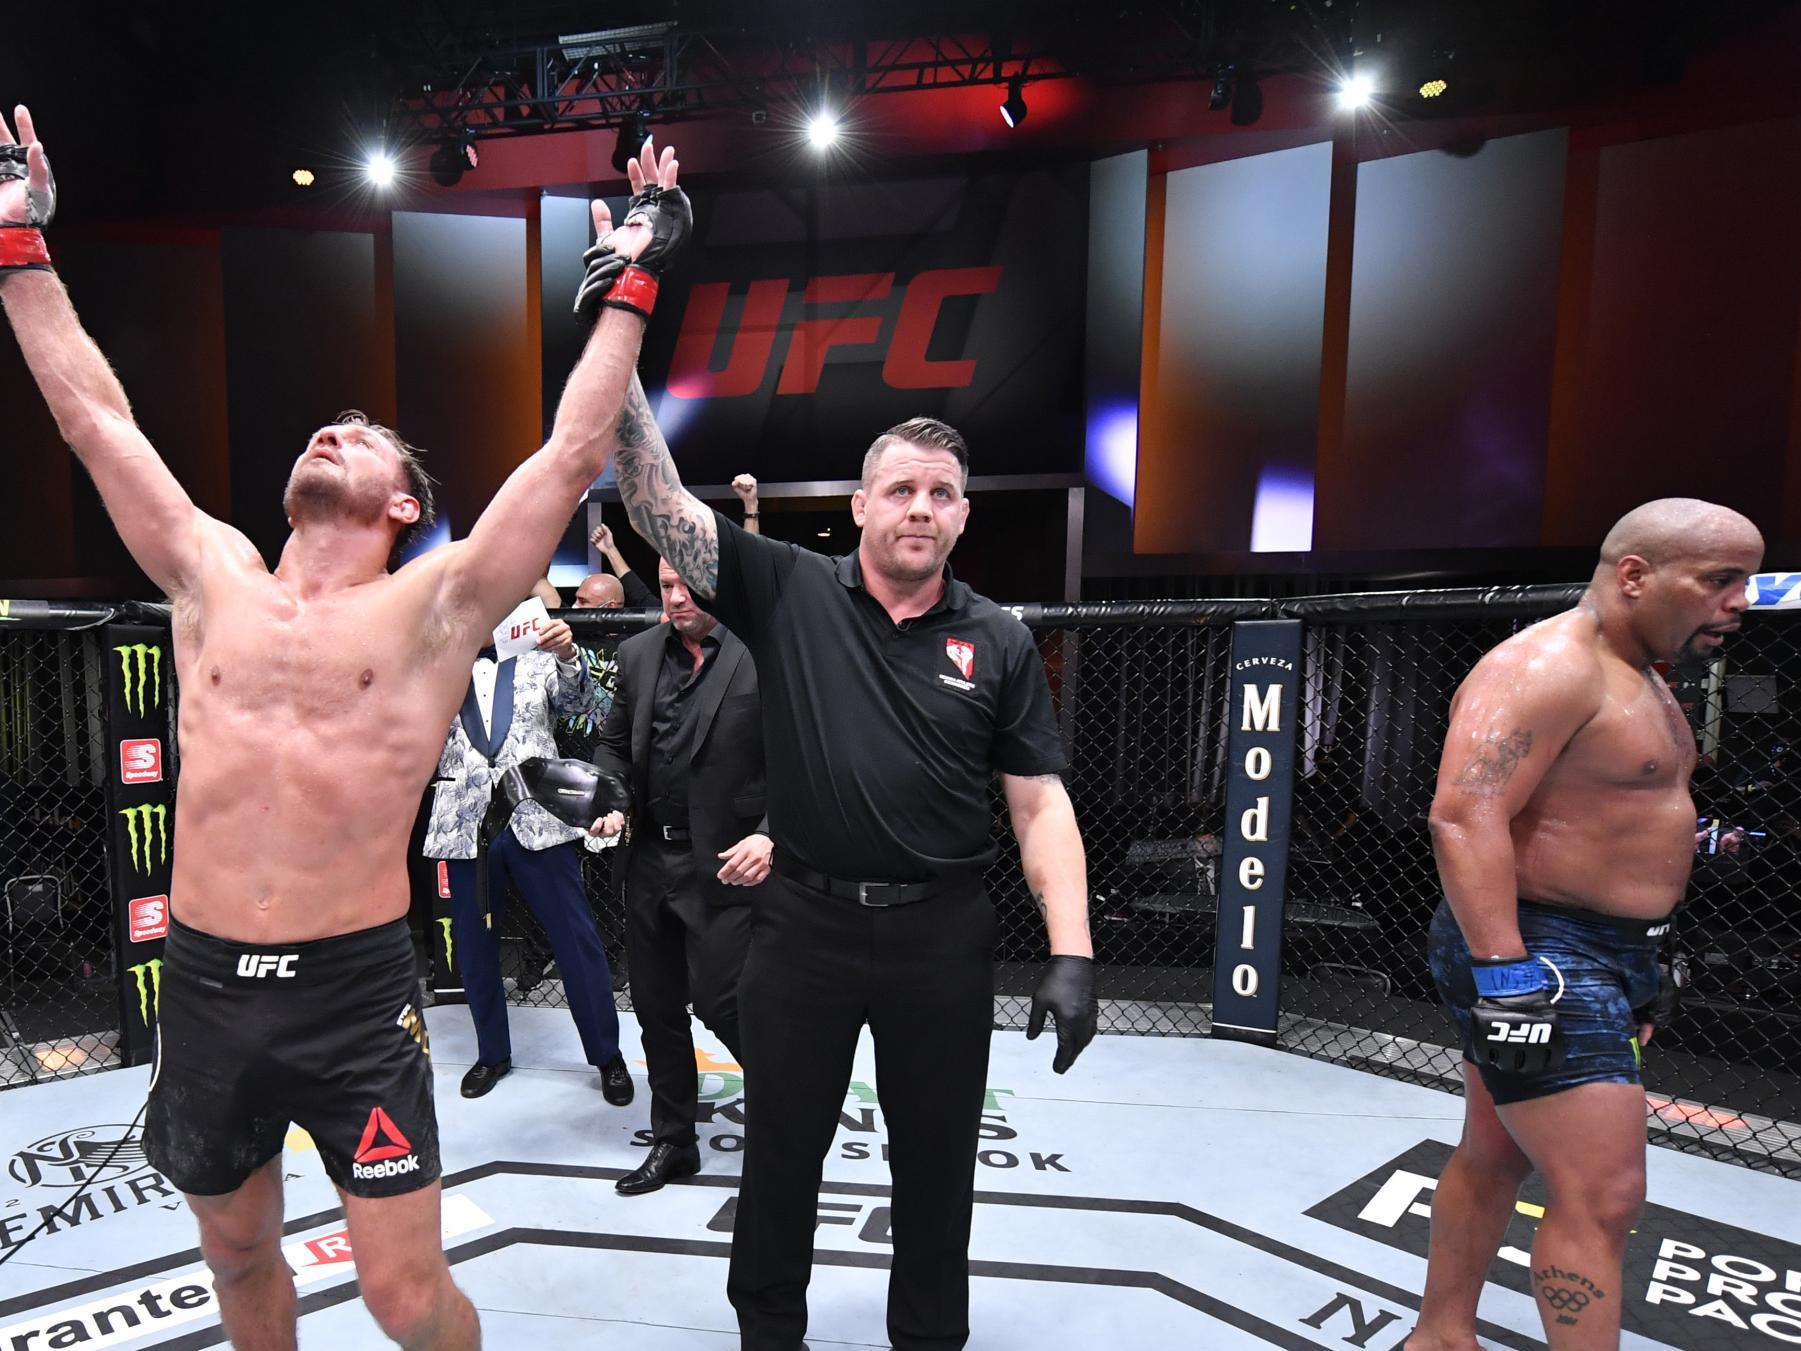 UFC 252 results: Stipe Miocic outpoints retiring Daniel Cormier to ...